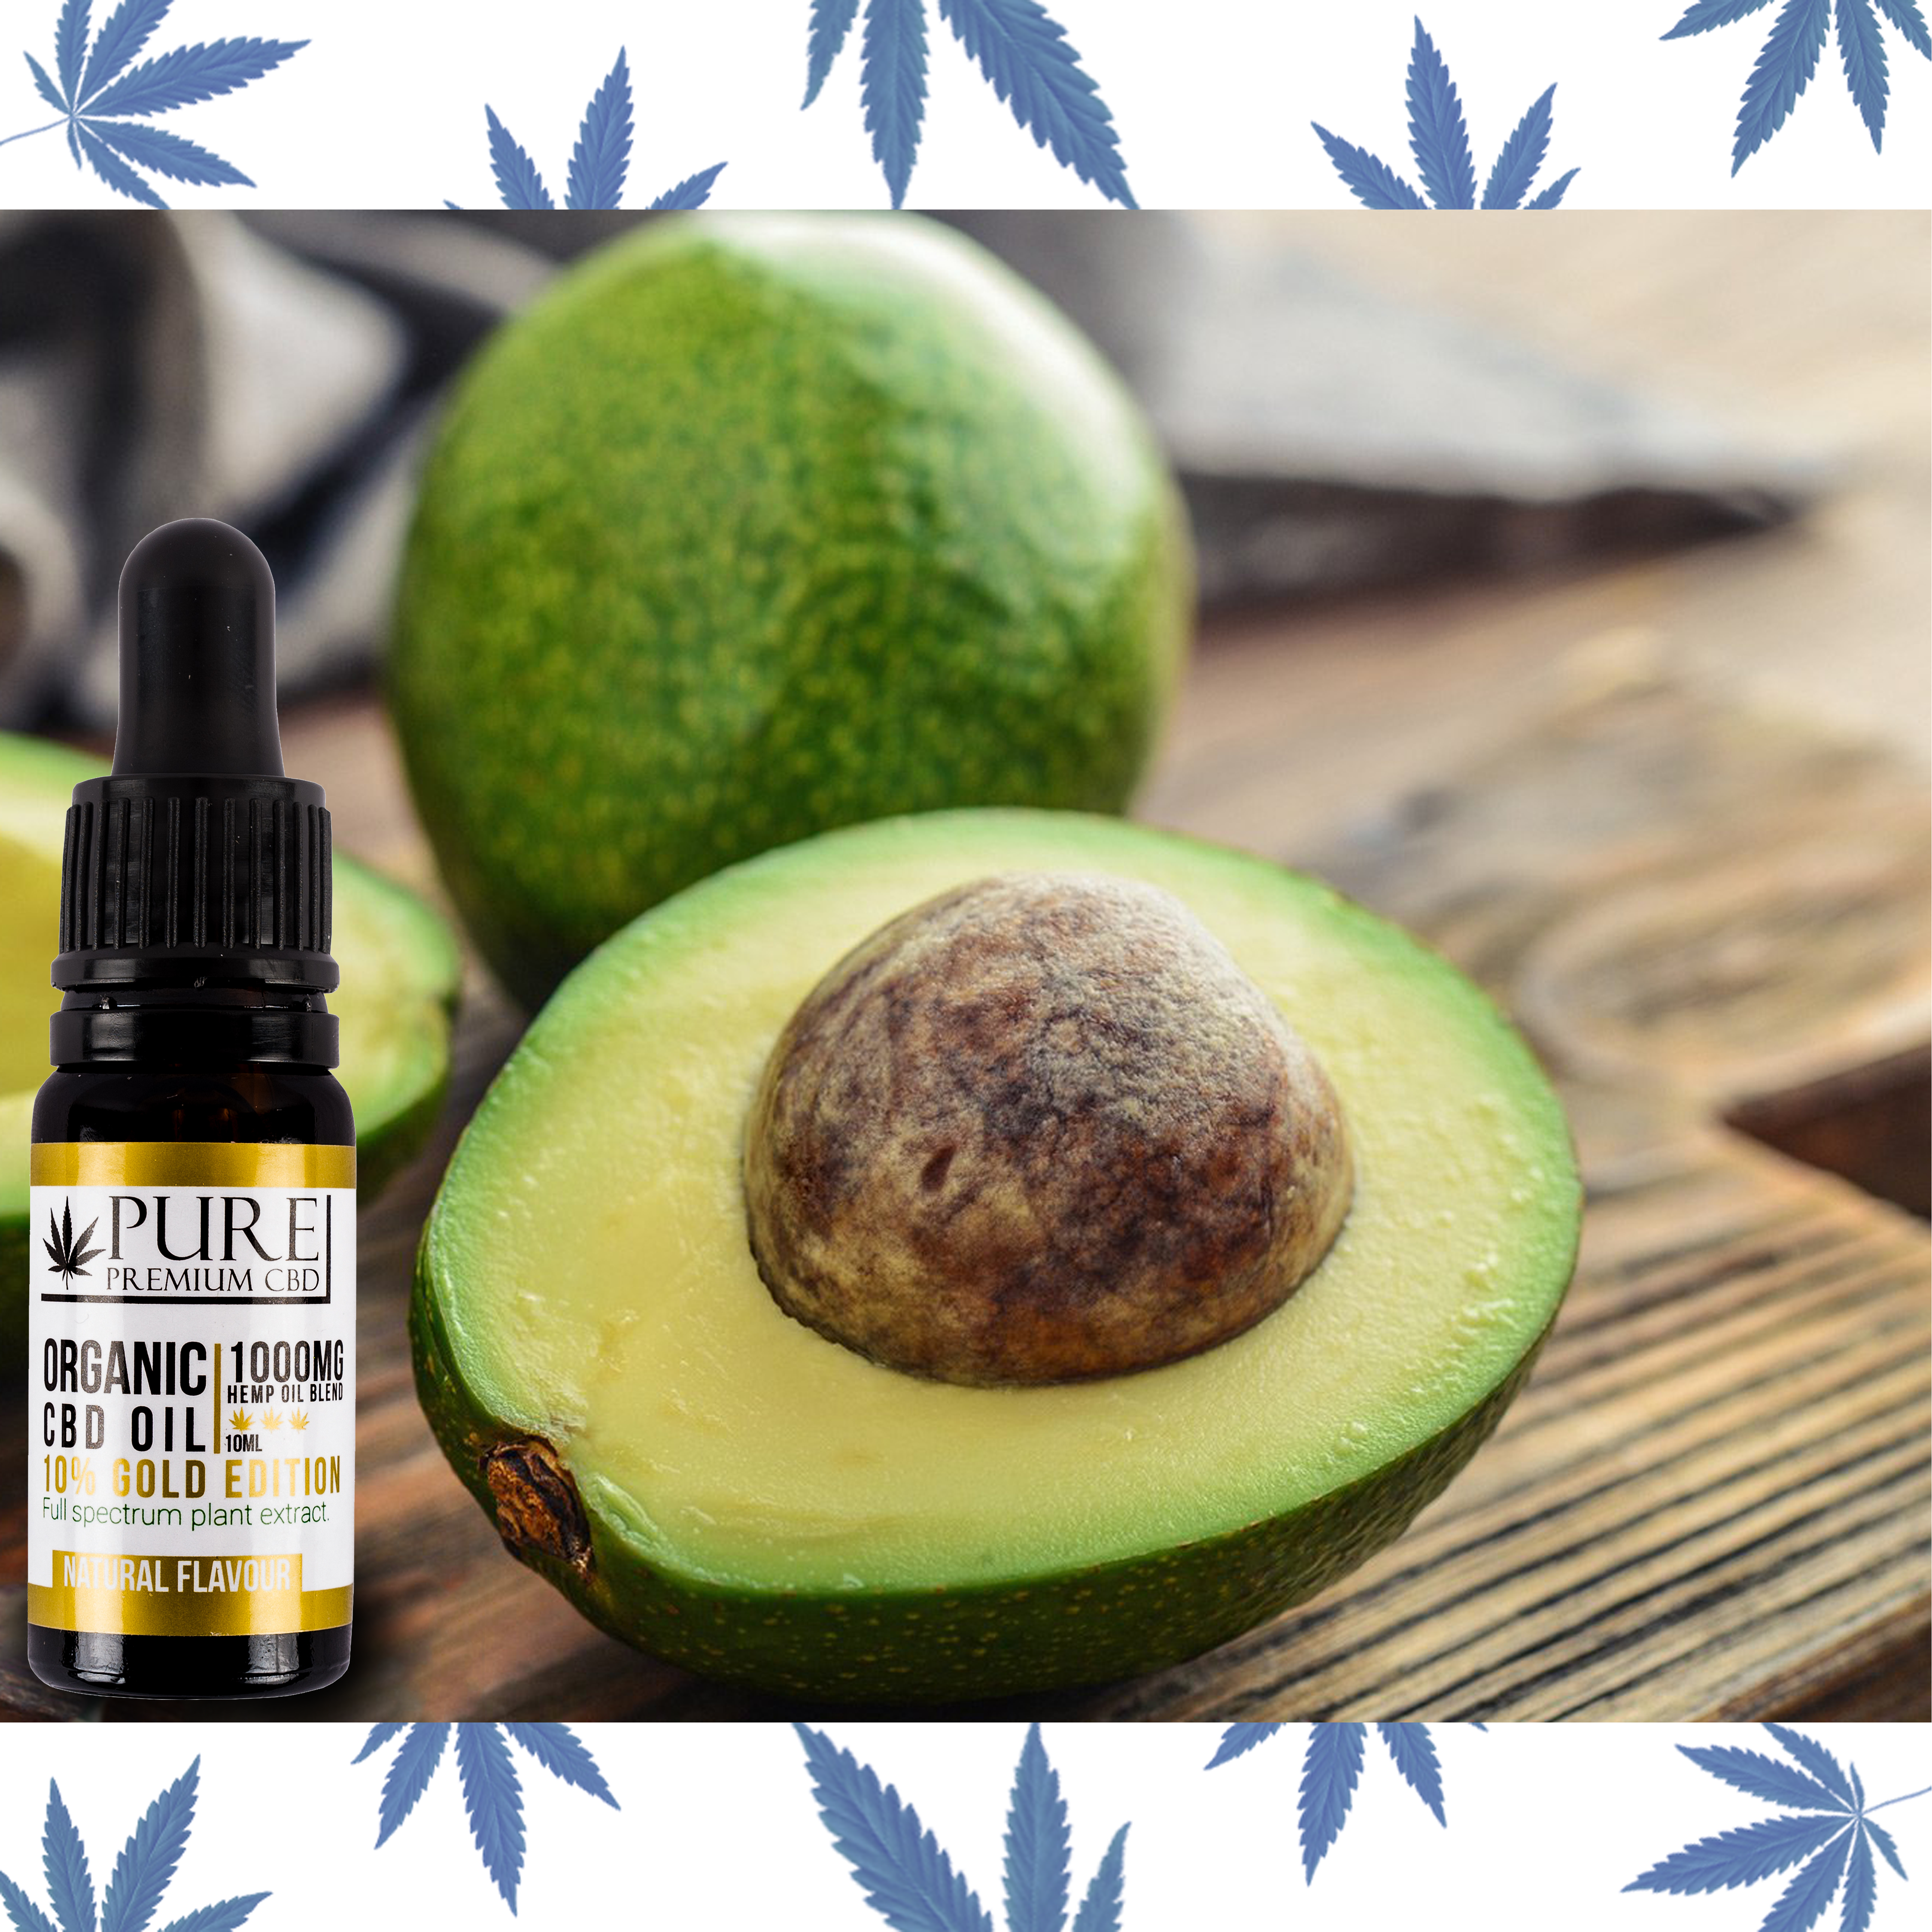 When Should You Take CBD Oil? Before or After Food?